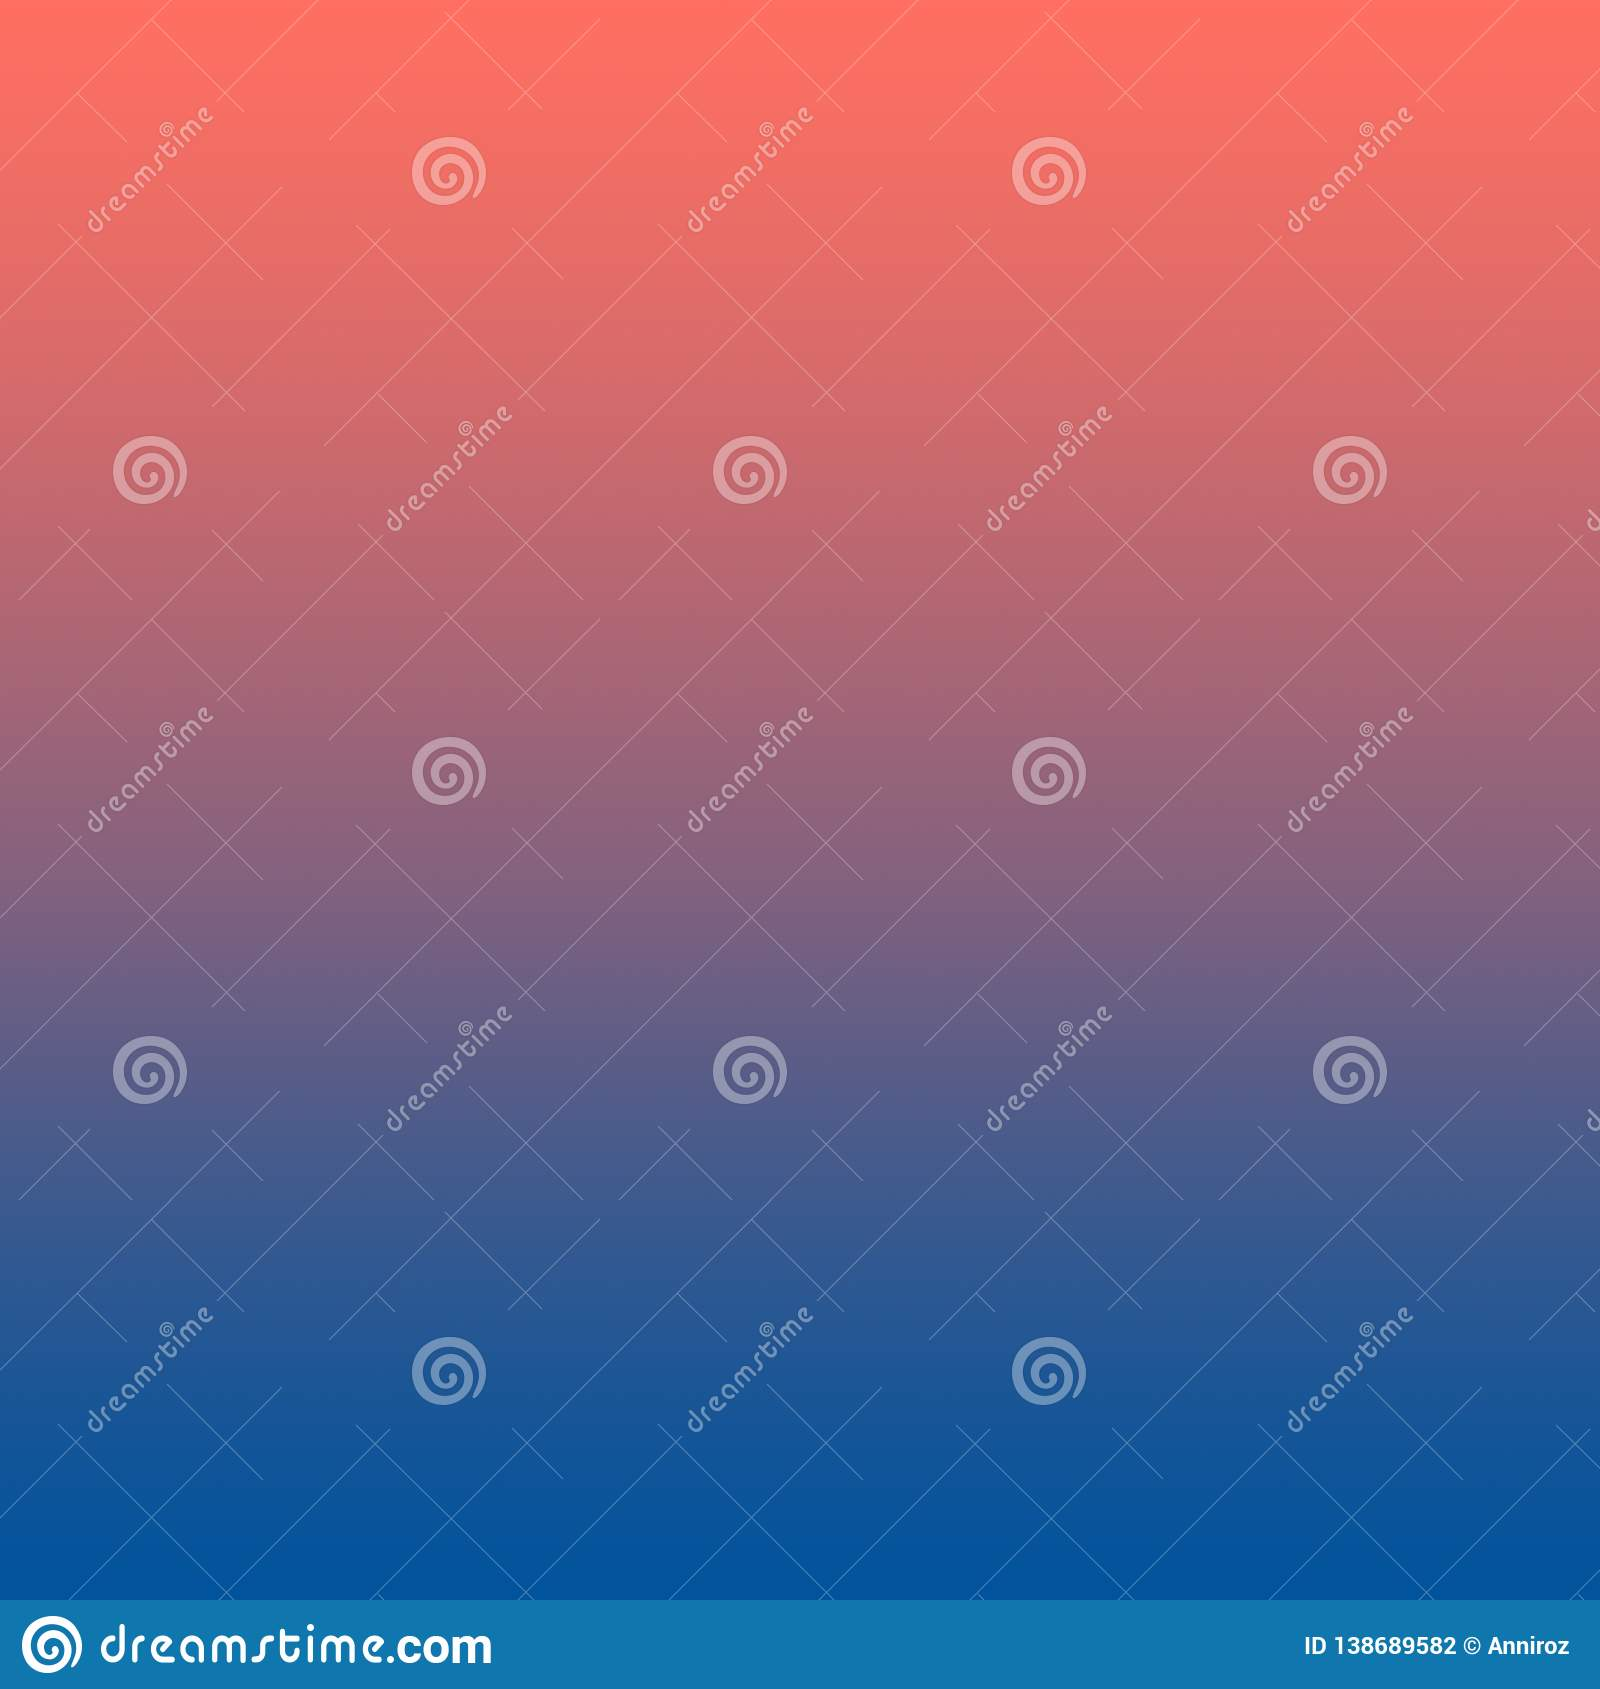 61ca4affe89 Millennial Pink Coral Blue Gradient Ombre Background Trendy Colors